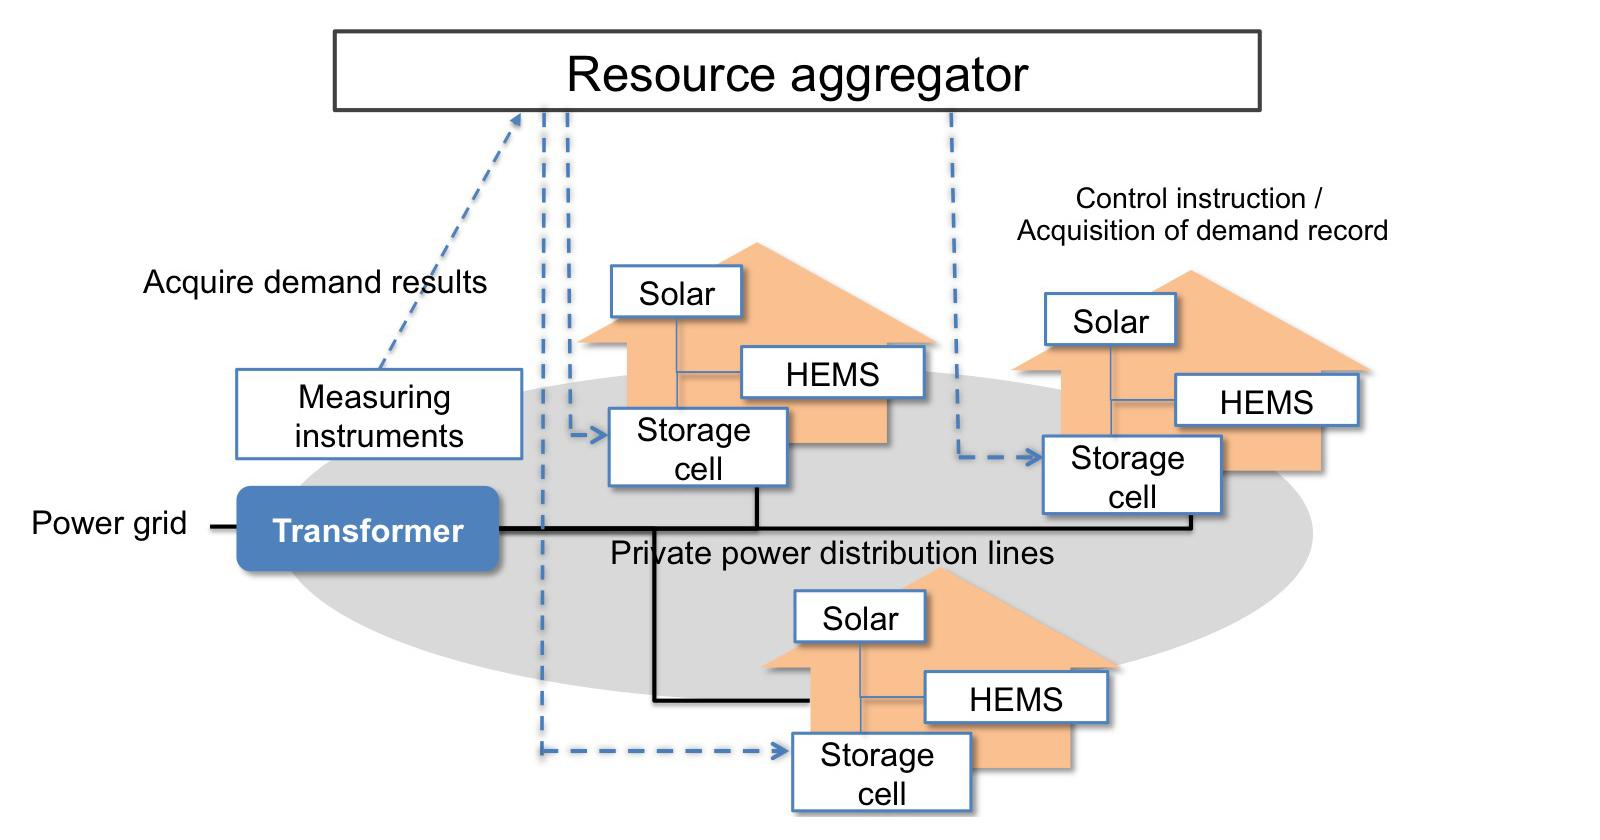 Resource aggregator